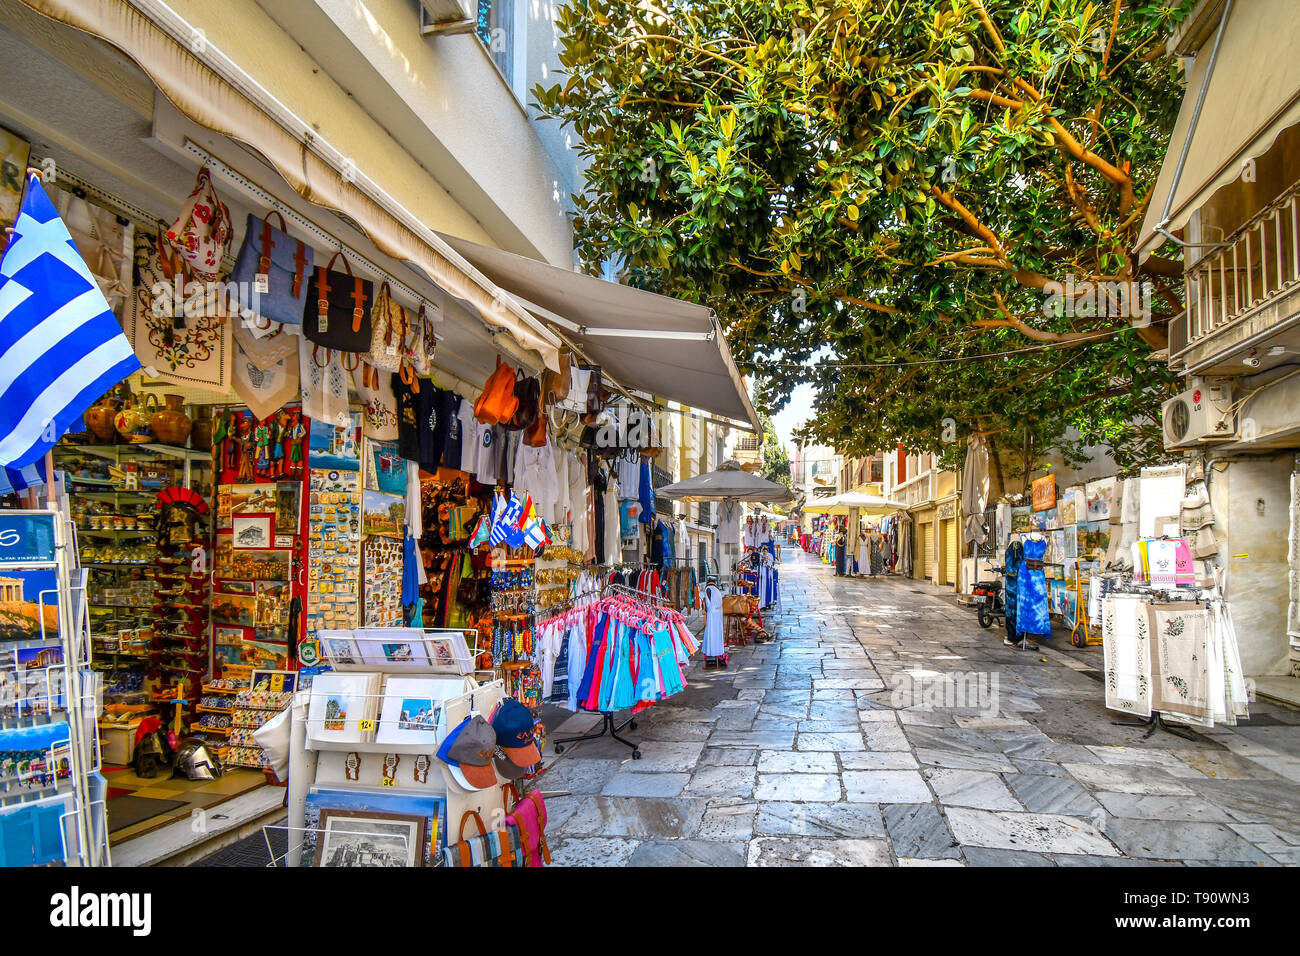 A typical tourist street and neighborhood in the Plaka District of Athens, Greece, with cafes, souvenirs and markets Stock Photo